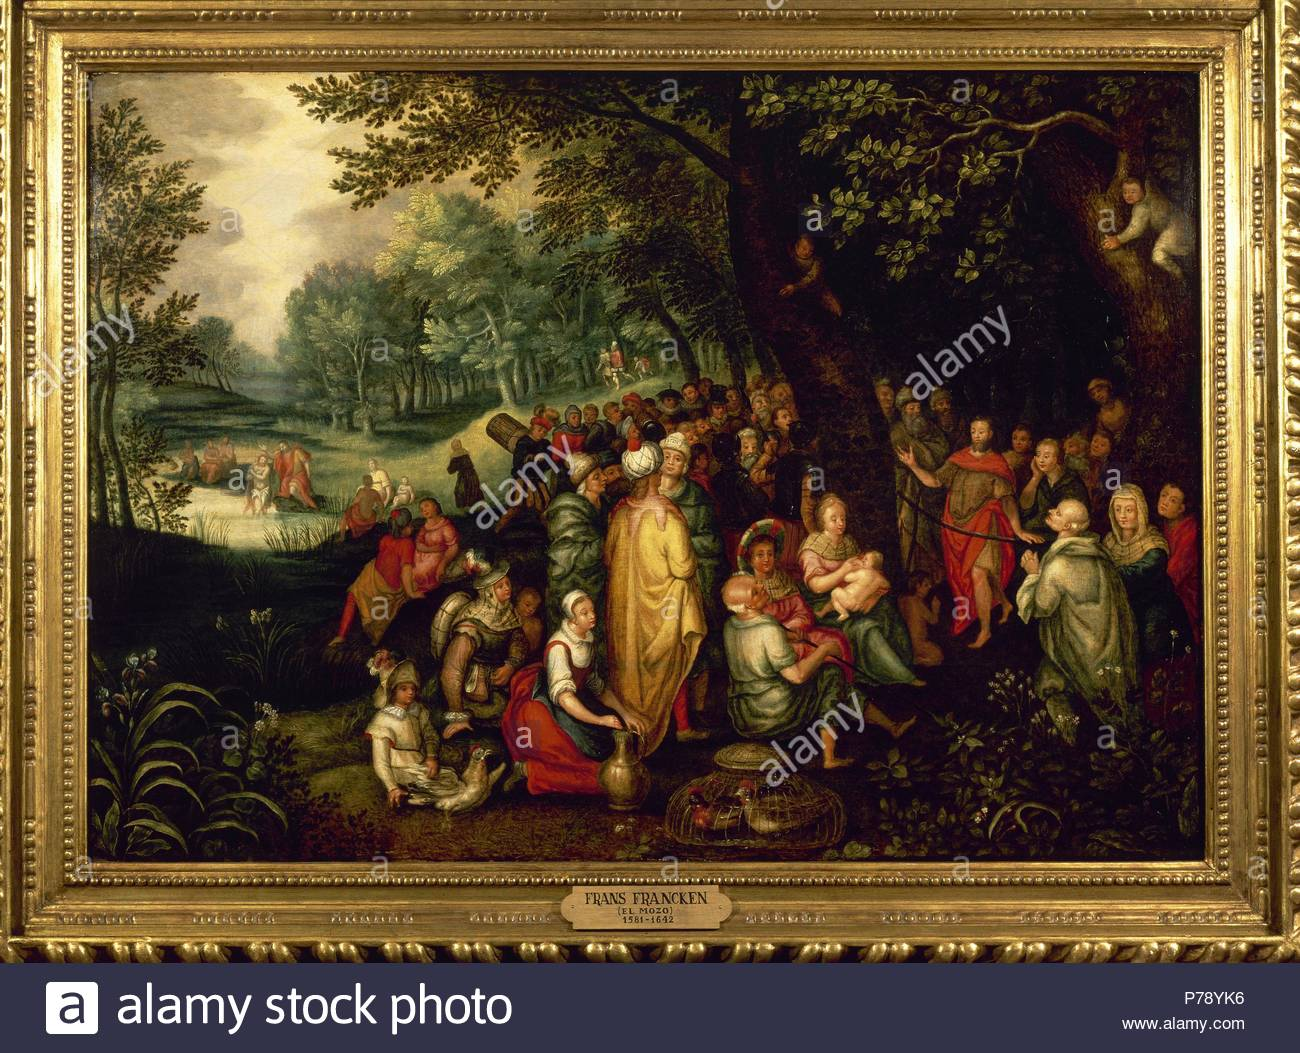 Frans Francken the Younger (1581-1642). Flemish painter. Scenes from the  life of John the Baptist. 17th century.